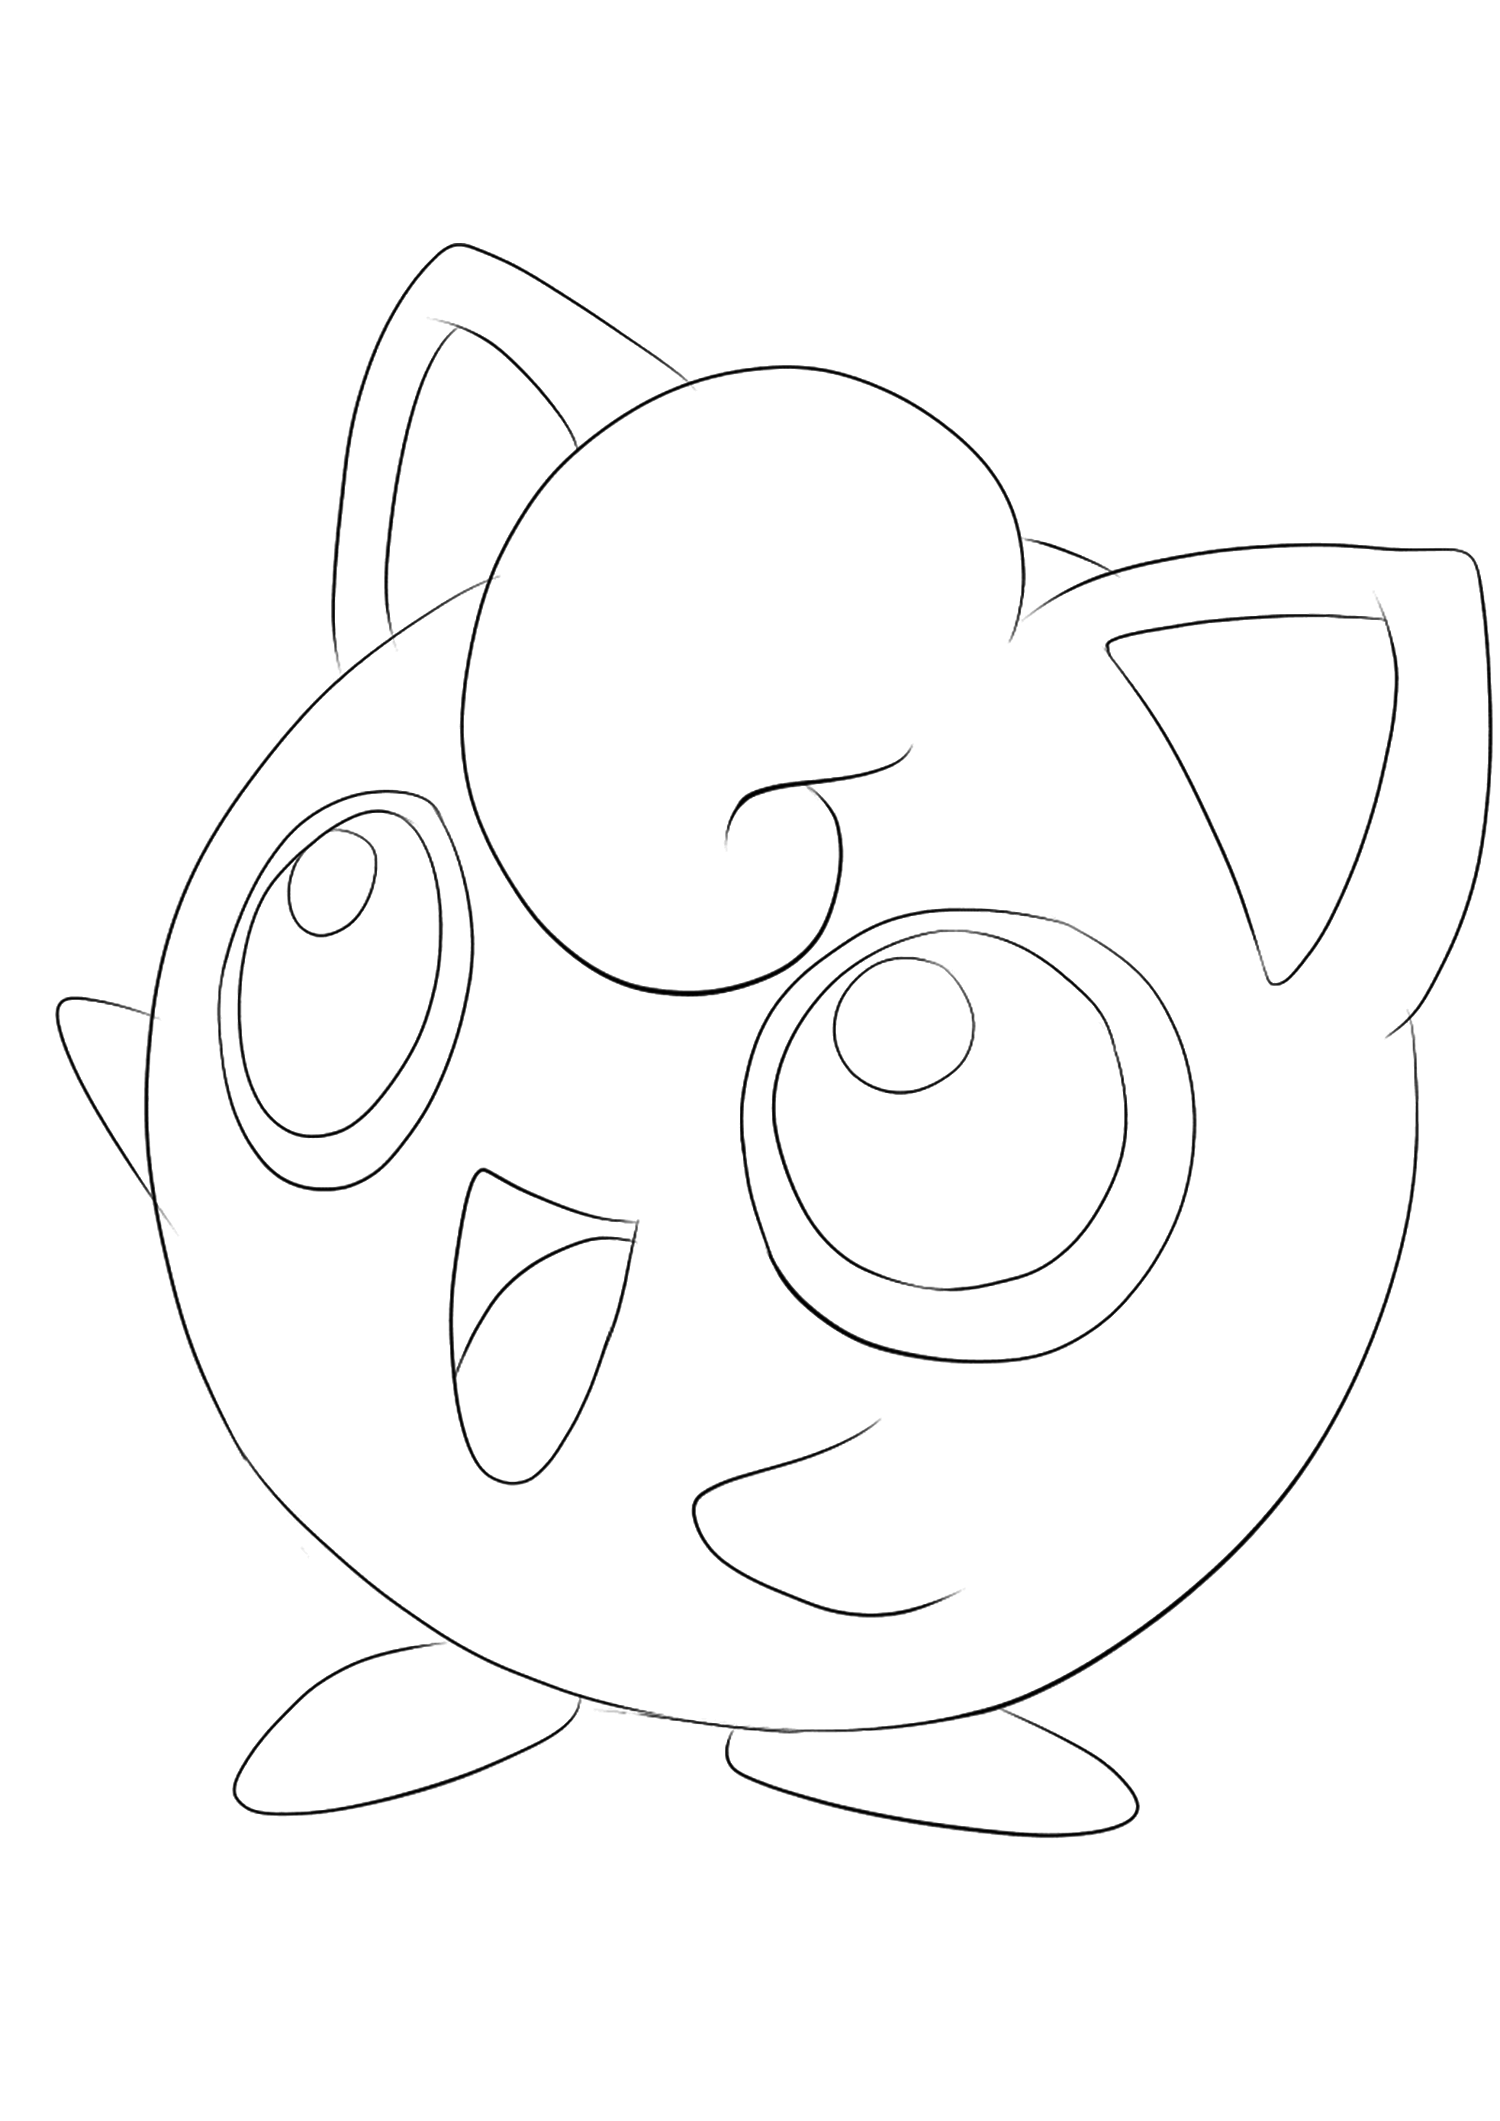 <b>Jigglypuff</b> (No.39) : Pokemon (Generation I)